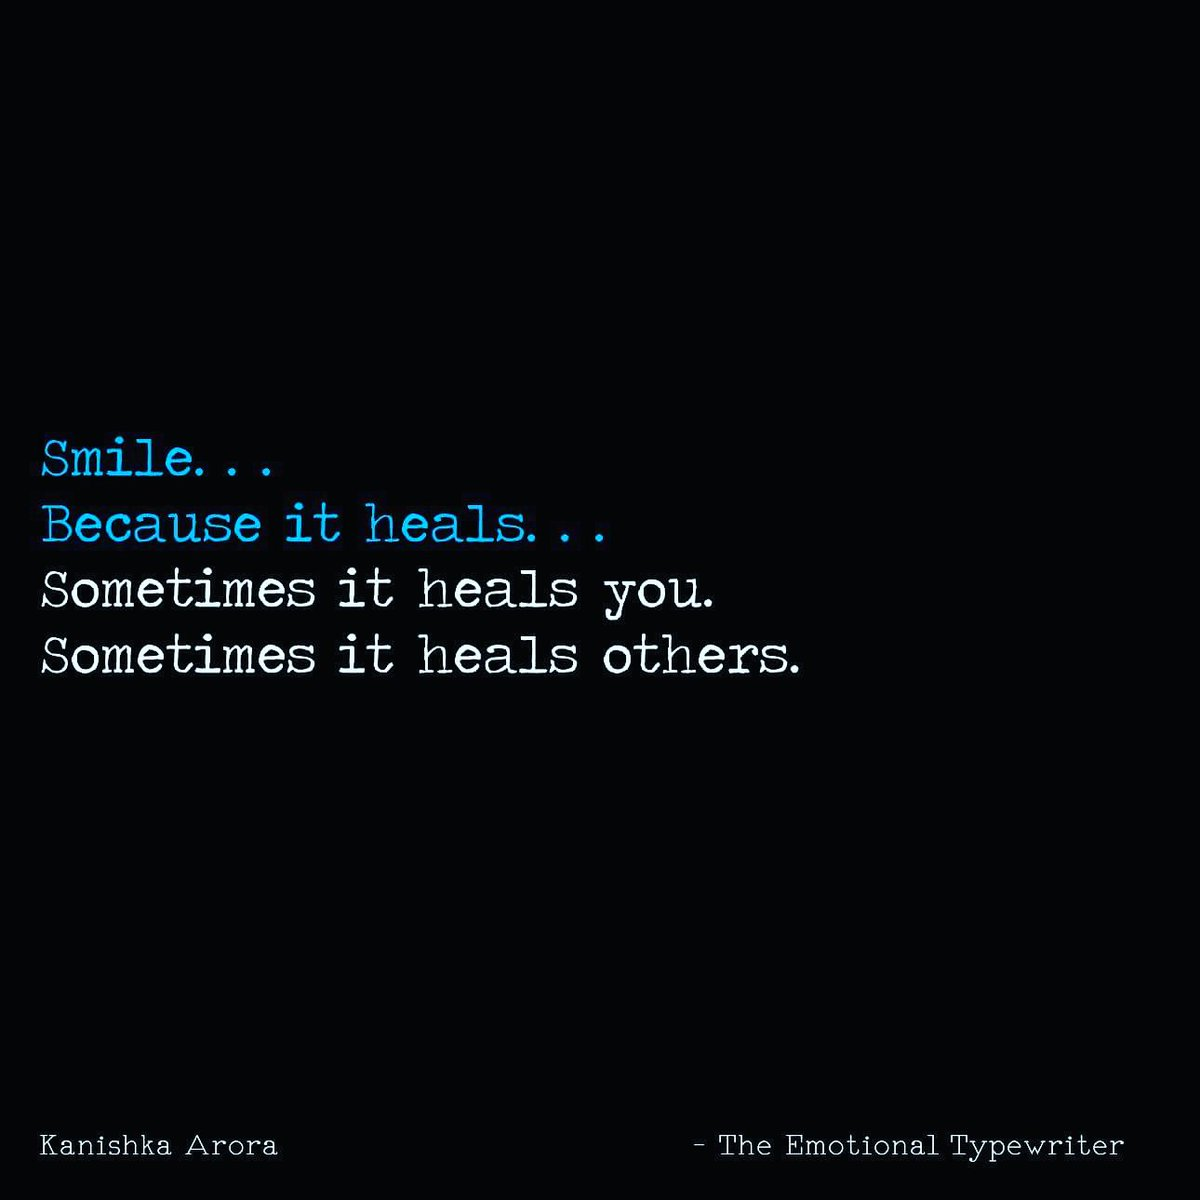 Emotionaltypewriter On Twitter Smile Quotes Emo